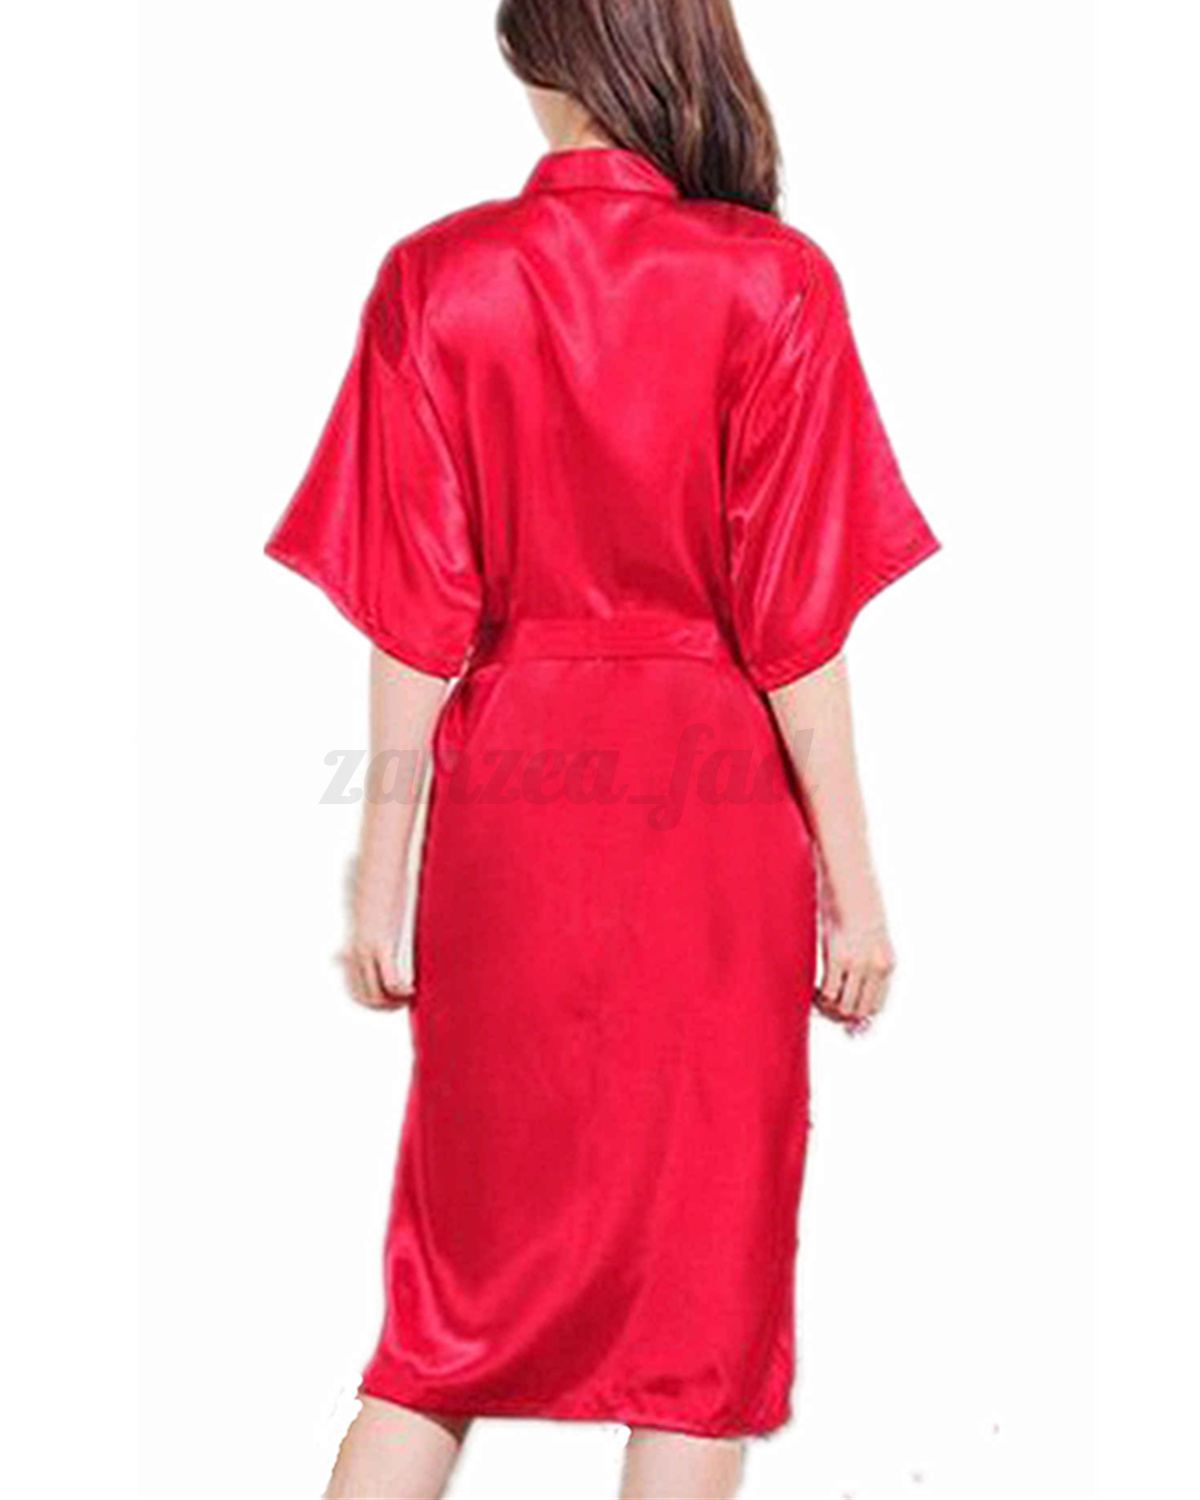 sexy damen satin lang pyjama lingerie nachtw sche bademantel kimono kleid s xxxl ebay. Black Bedroom Furniture Sets. Home Design Ideas